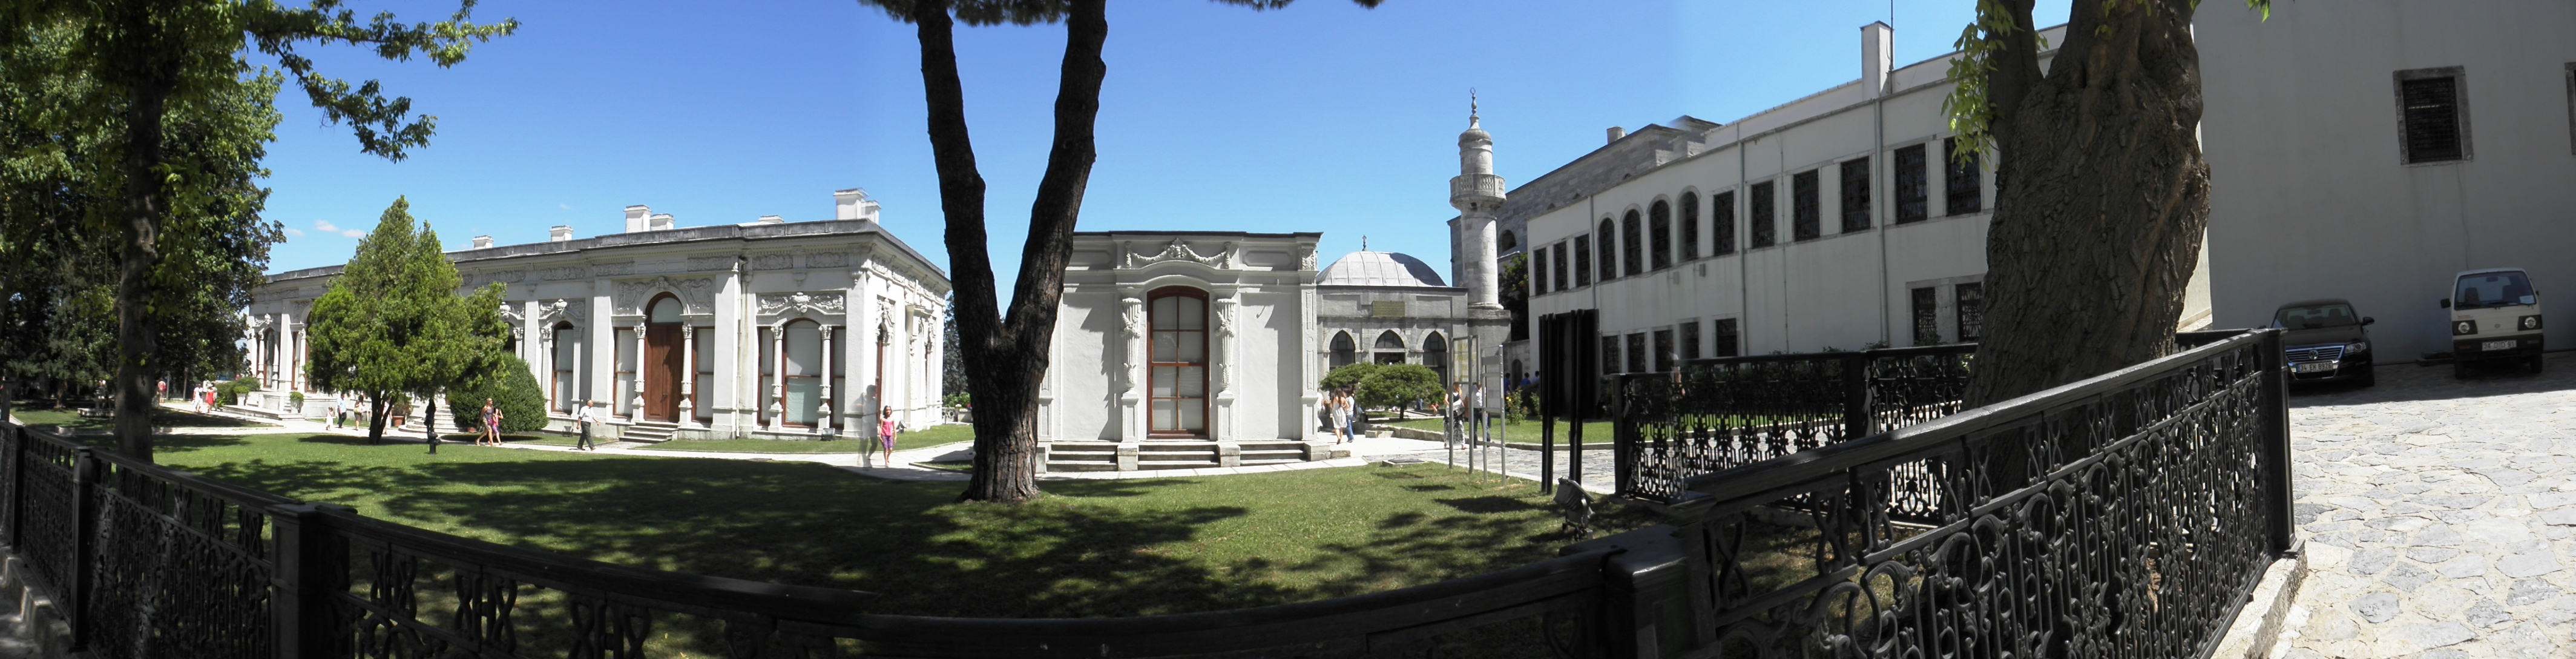 Palace of the sultan of the ottoman empi photo